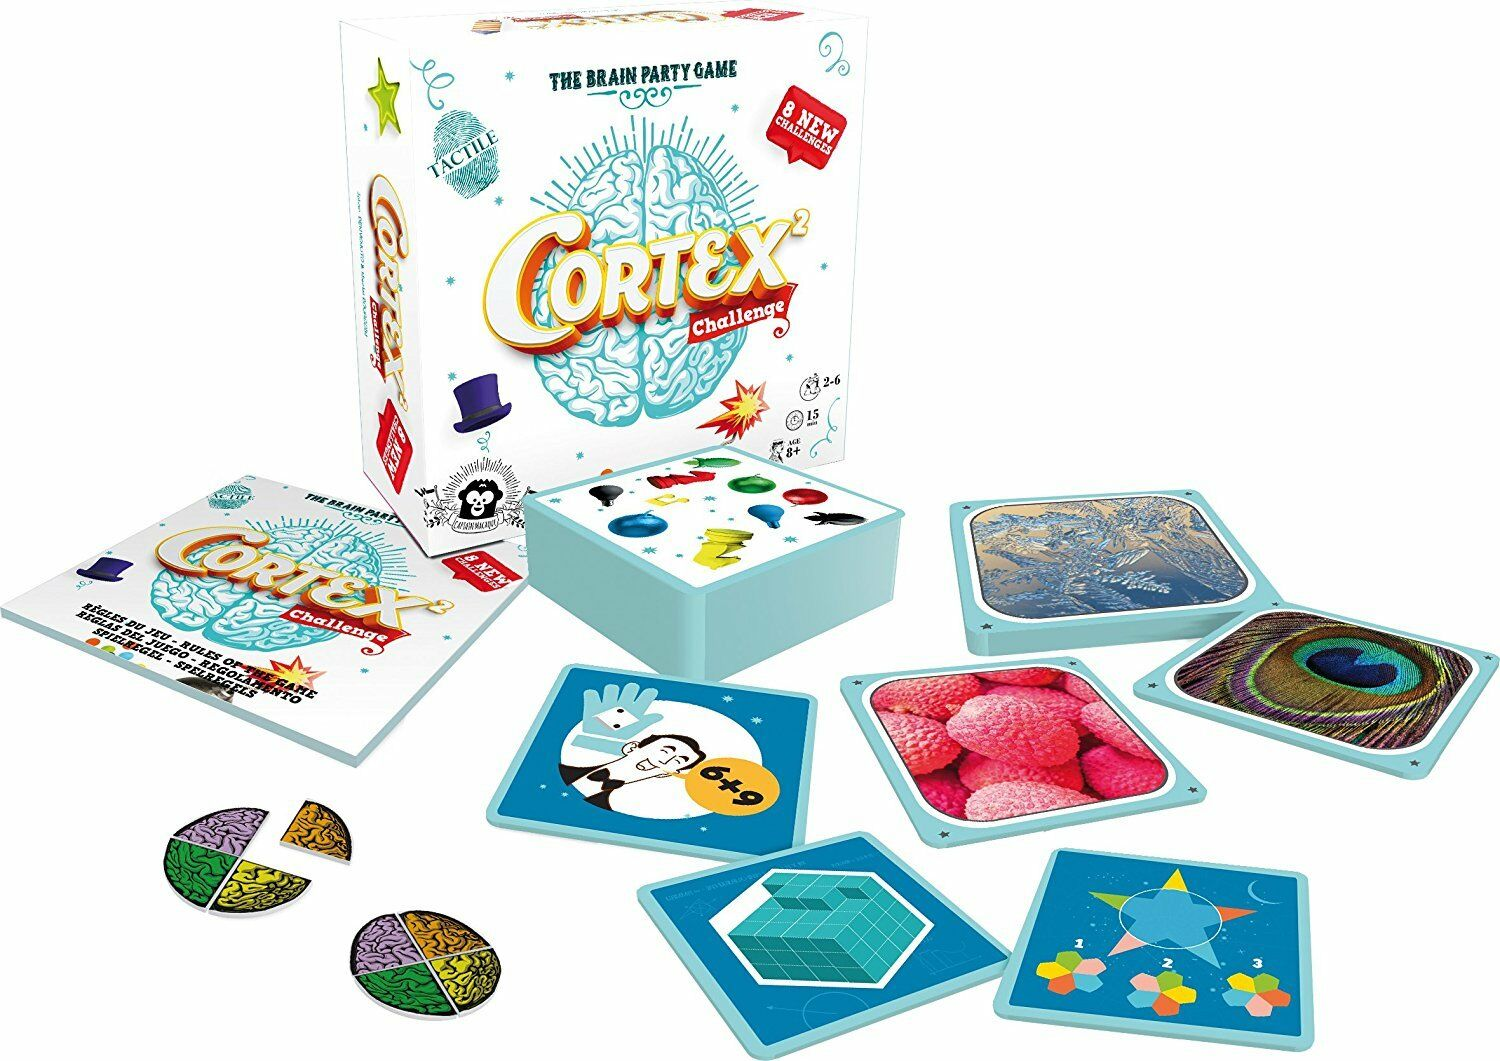 Card game. Cortex Cortex Cortex 2 Challenge. The Brain Party game. from 2 to 6 players 8b9b6f